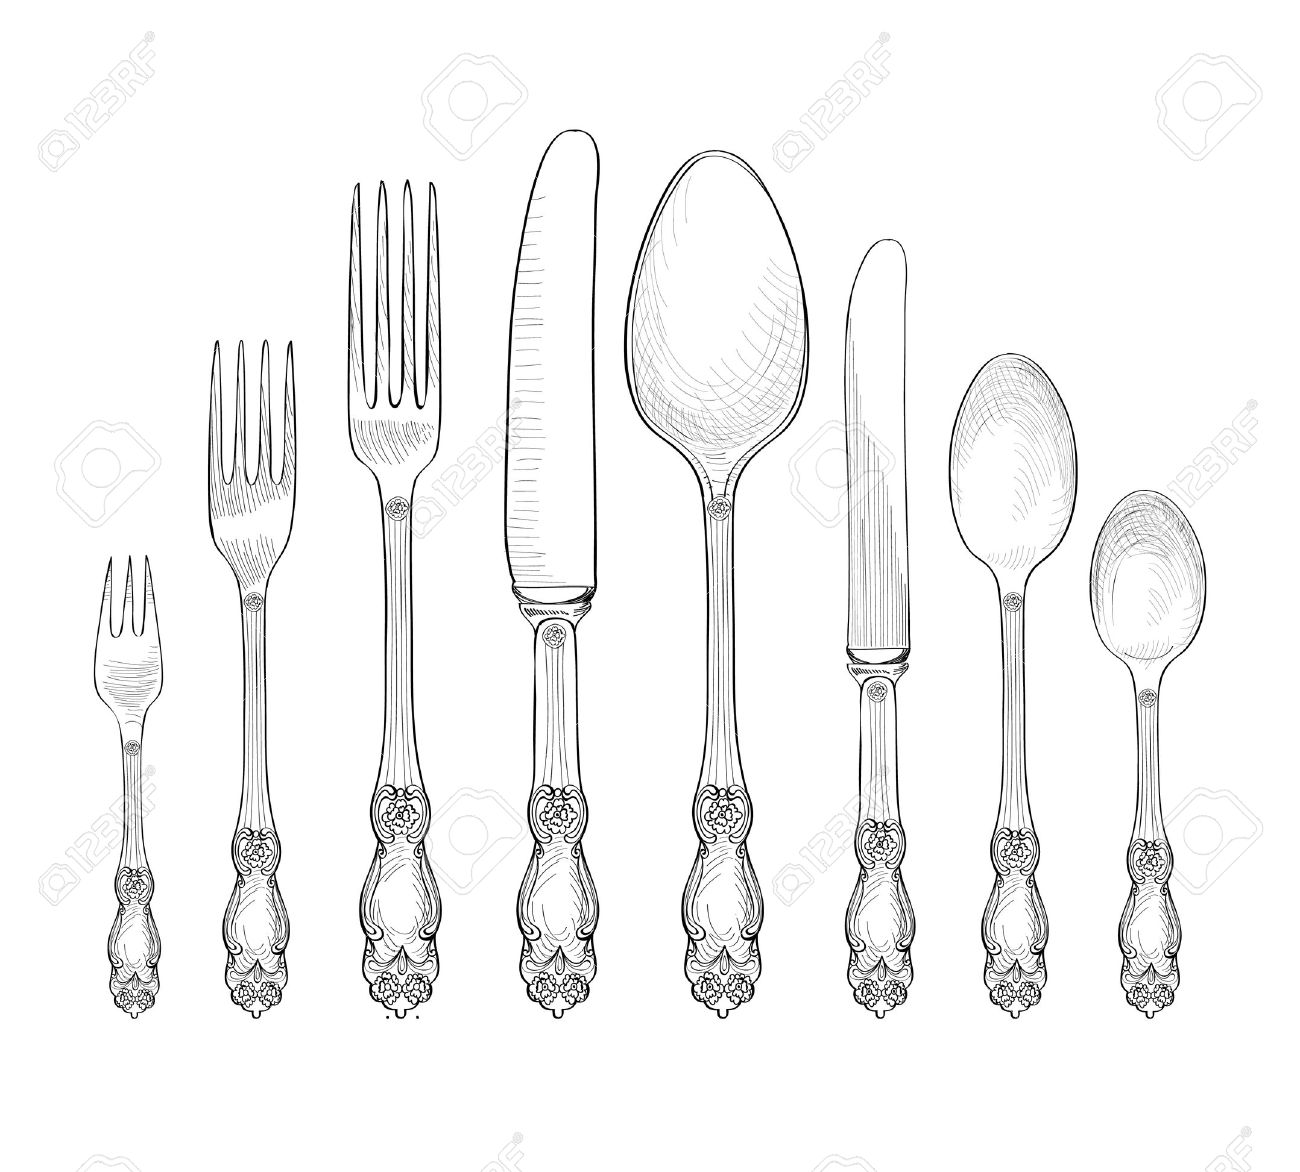 Table setting set. Fork, Knife, Spoon sketch set. Cutlery hand drawing collection. Catering engraved vector illustration. Restraunt service. Banquet still life - 53120324